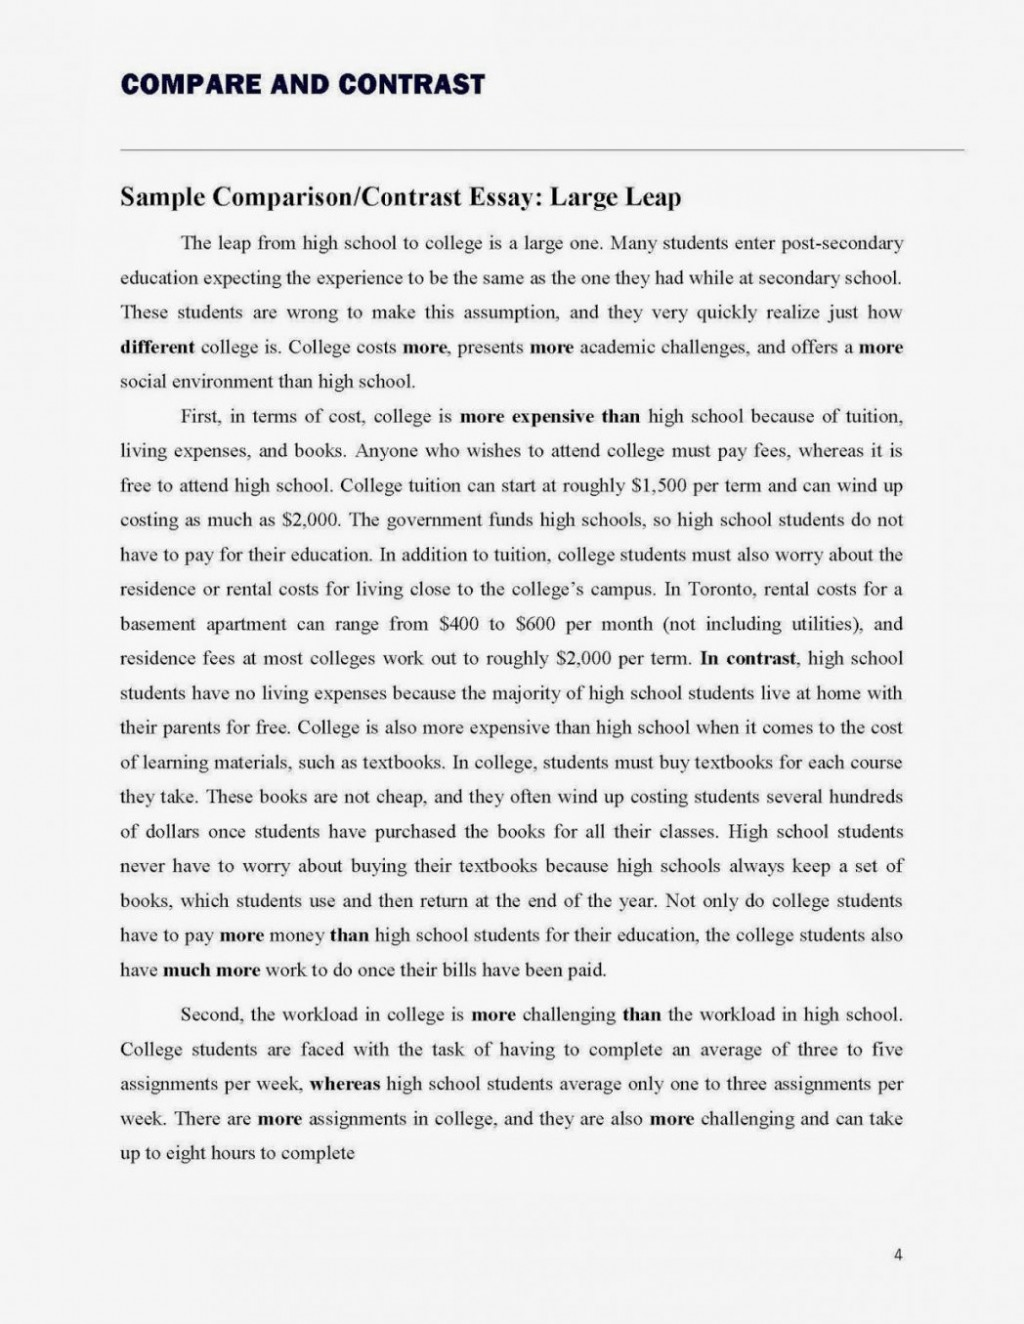 017 Nyu Essay Prompts Prompt Stern Examples Of T Undergraduate Topics Creative 1048x1356 Example Unforgettable Why 2018 Reddit Large